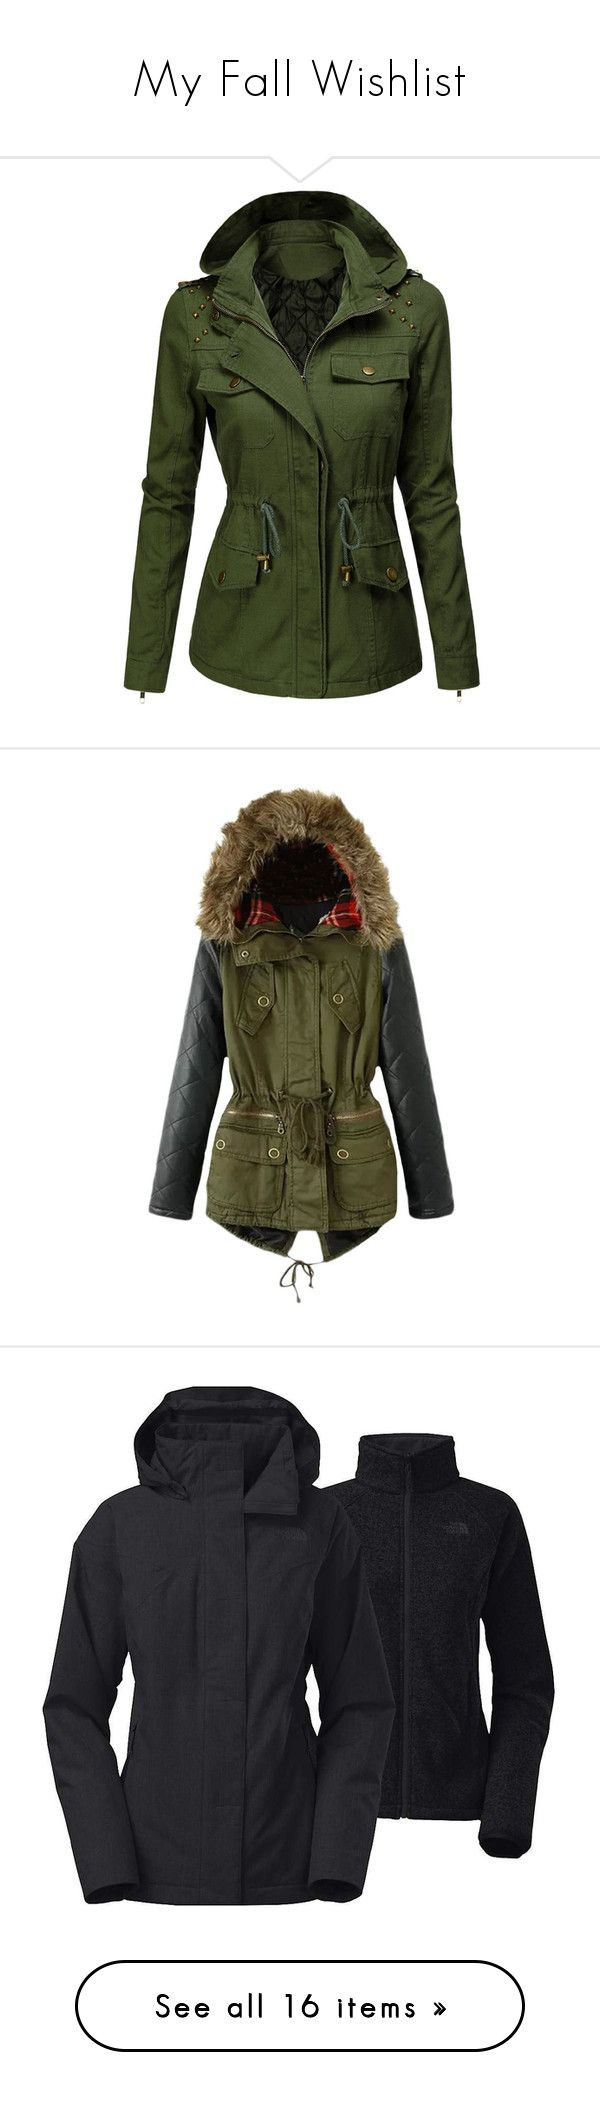 """My Fall Wishlist"" by j-n-a ❤ liked on Polyvore featuring MyFallWishList, outerwear, jackets, tops, military inspired jacket, green jacket, military jacket, green military jacket, green military style jacket e coats"